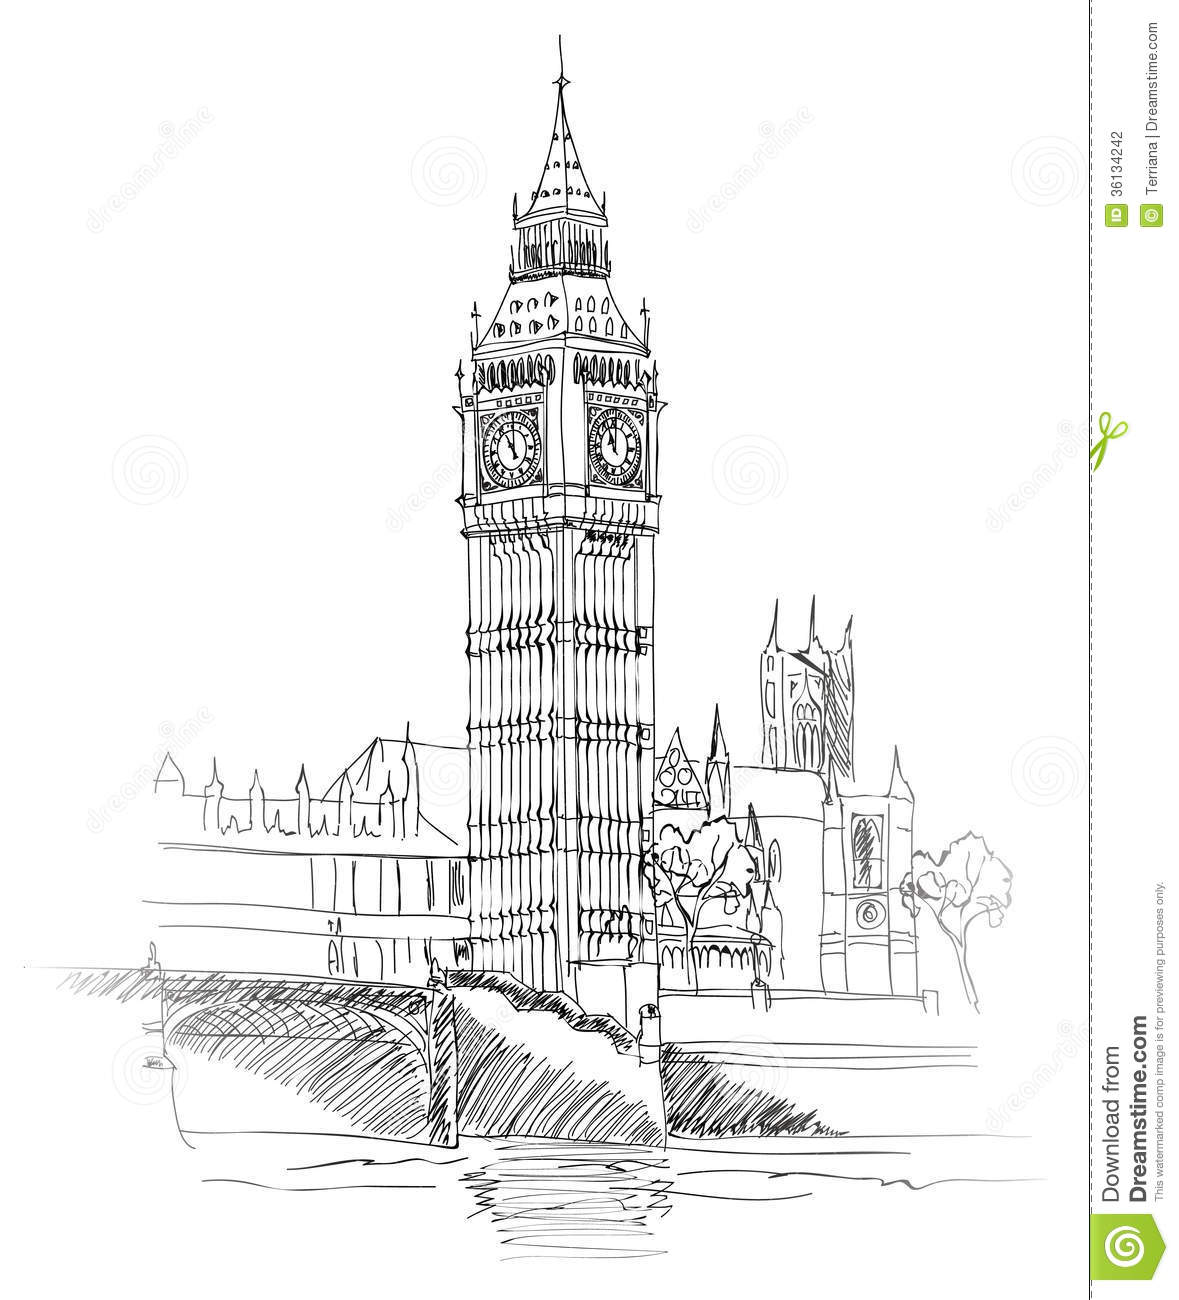 Stock Photography Big Ben London England Uk Travel Europe Old Fashioned Background Hand Drawn Illustration Vector Vintage Illustration Collection Image36134242 as well Ann Arbor Michigan in addition Metal House Plans likewise 610344770 as well 547398529681923799. on old kit houses